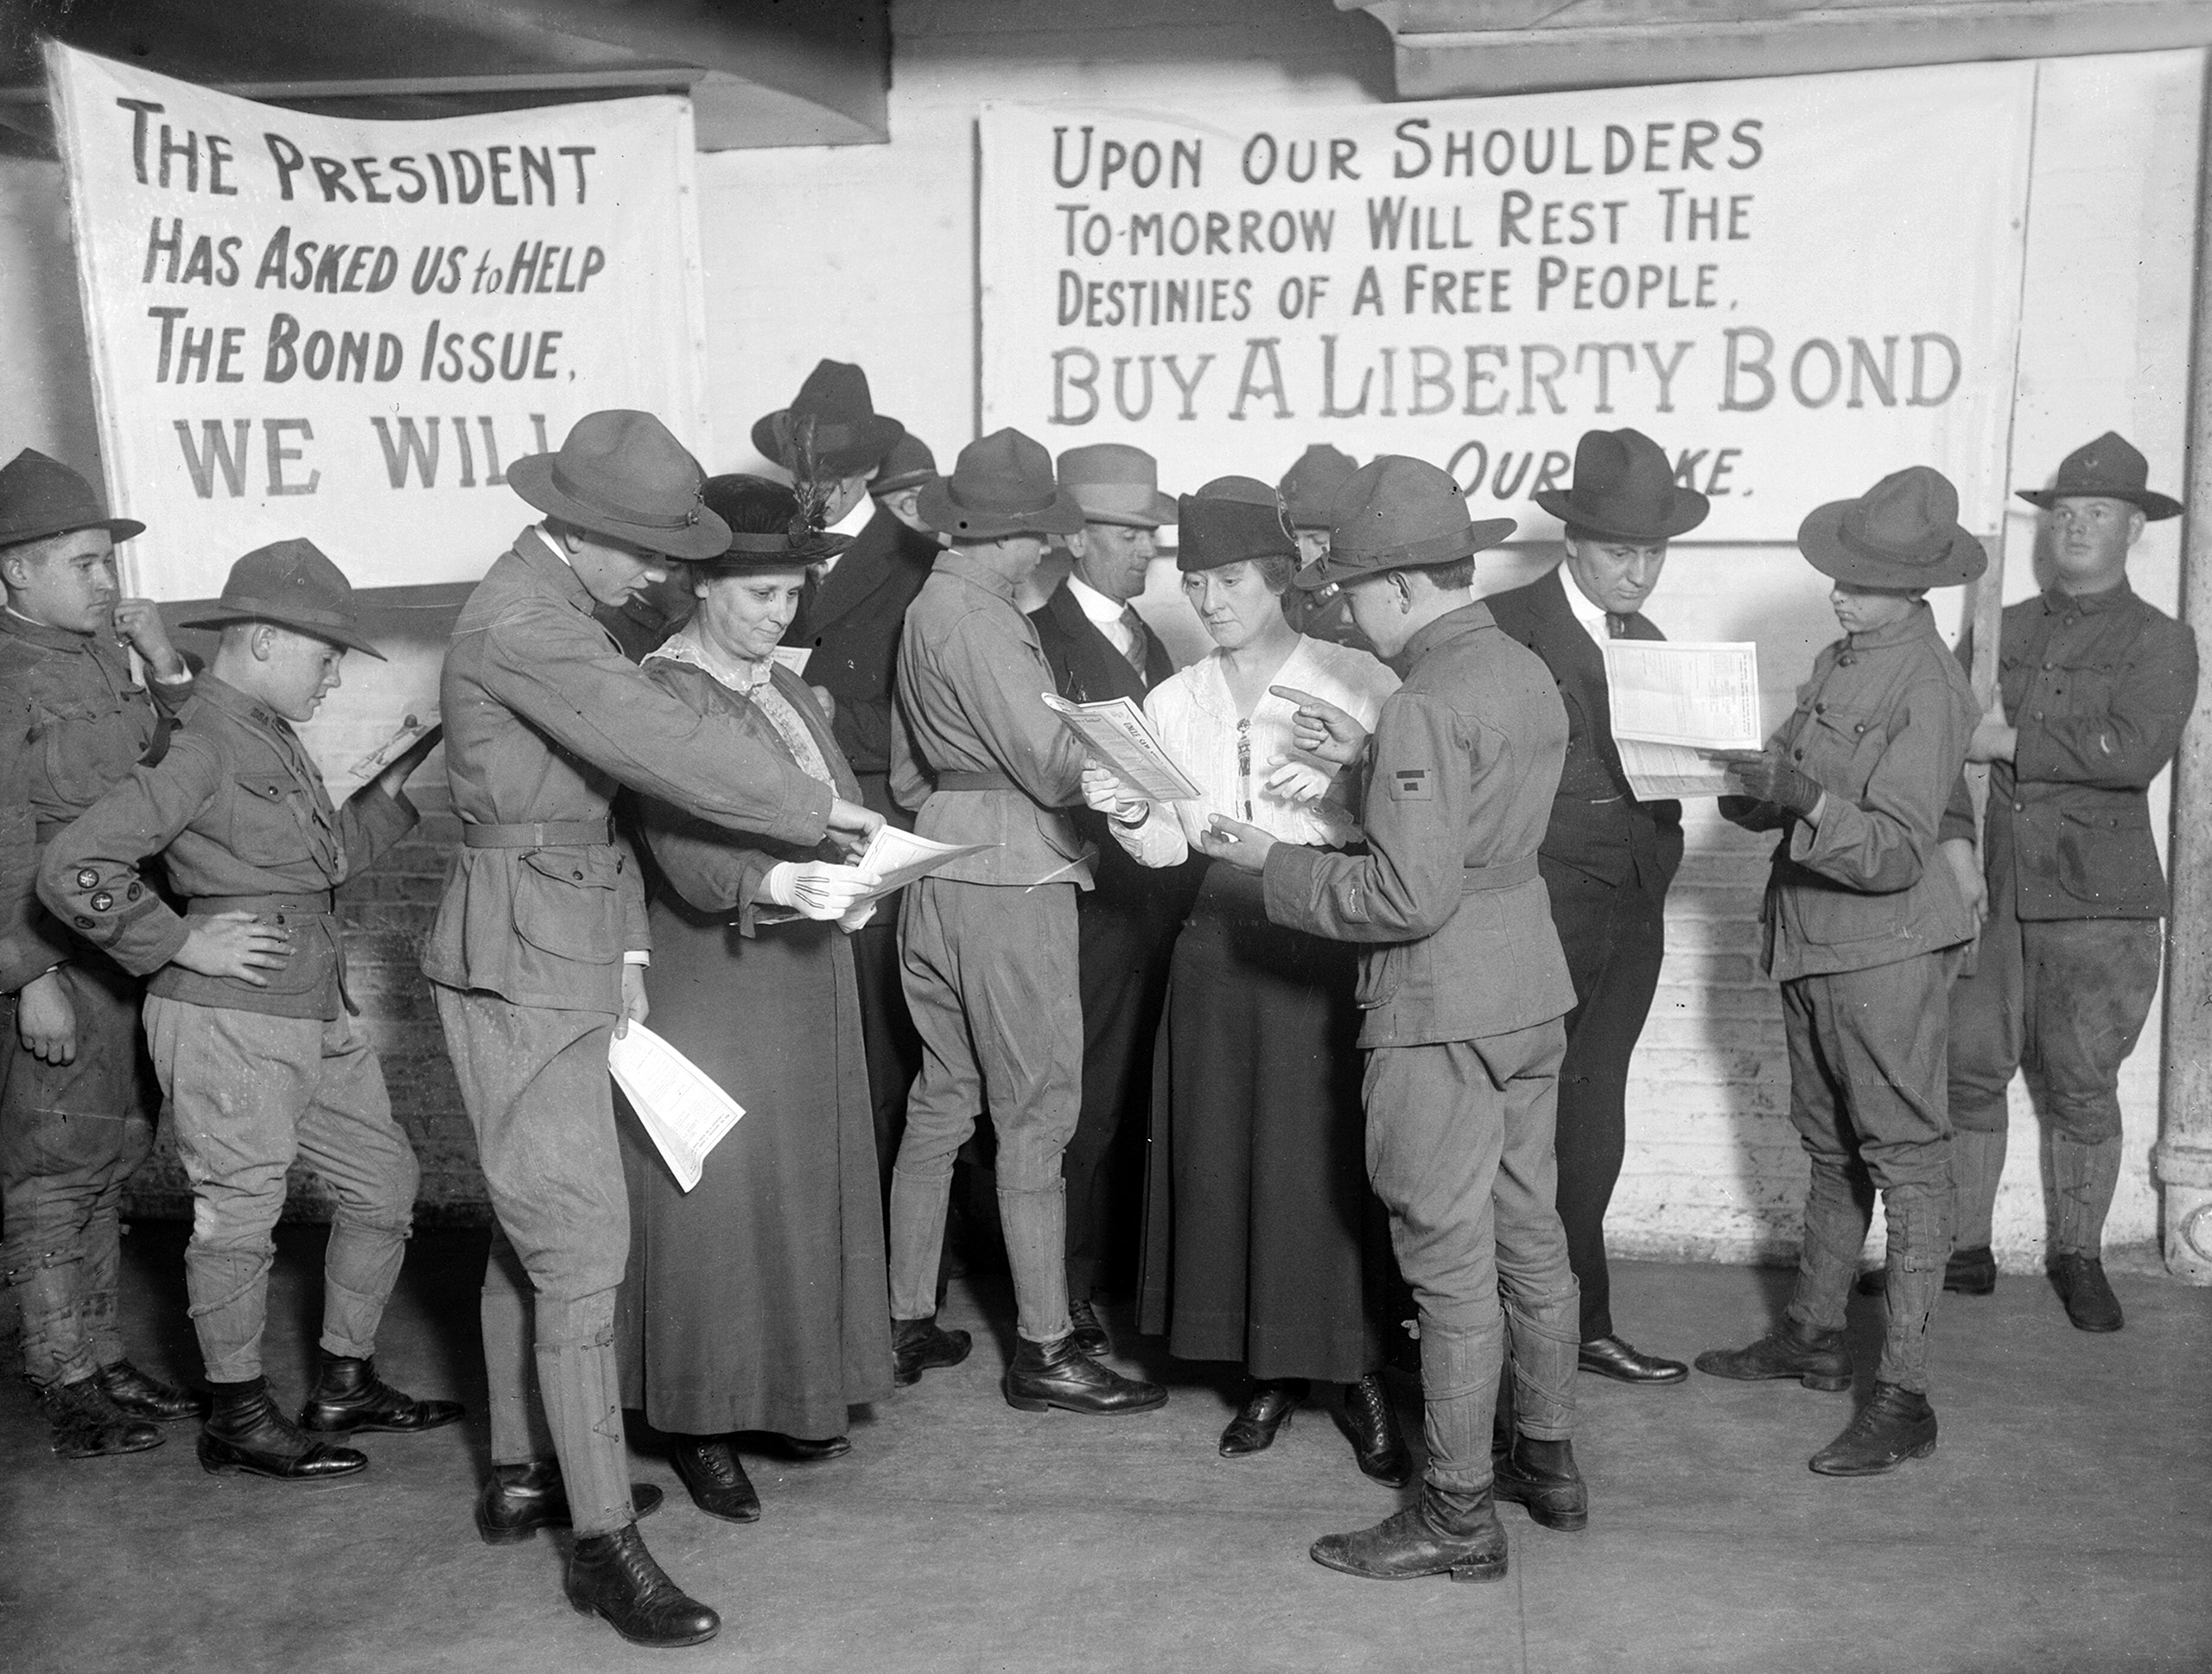 Boy scouts wearing U.S. Army uniforms sell Liberty Bonds in Chicago, Ill., 1917.